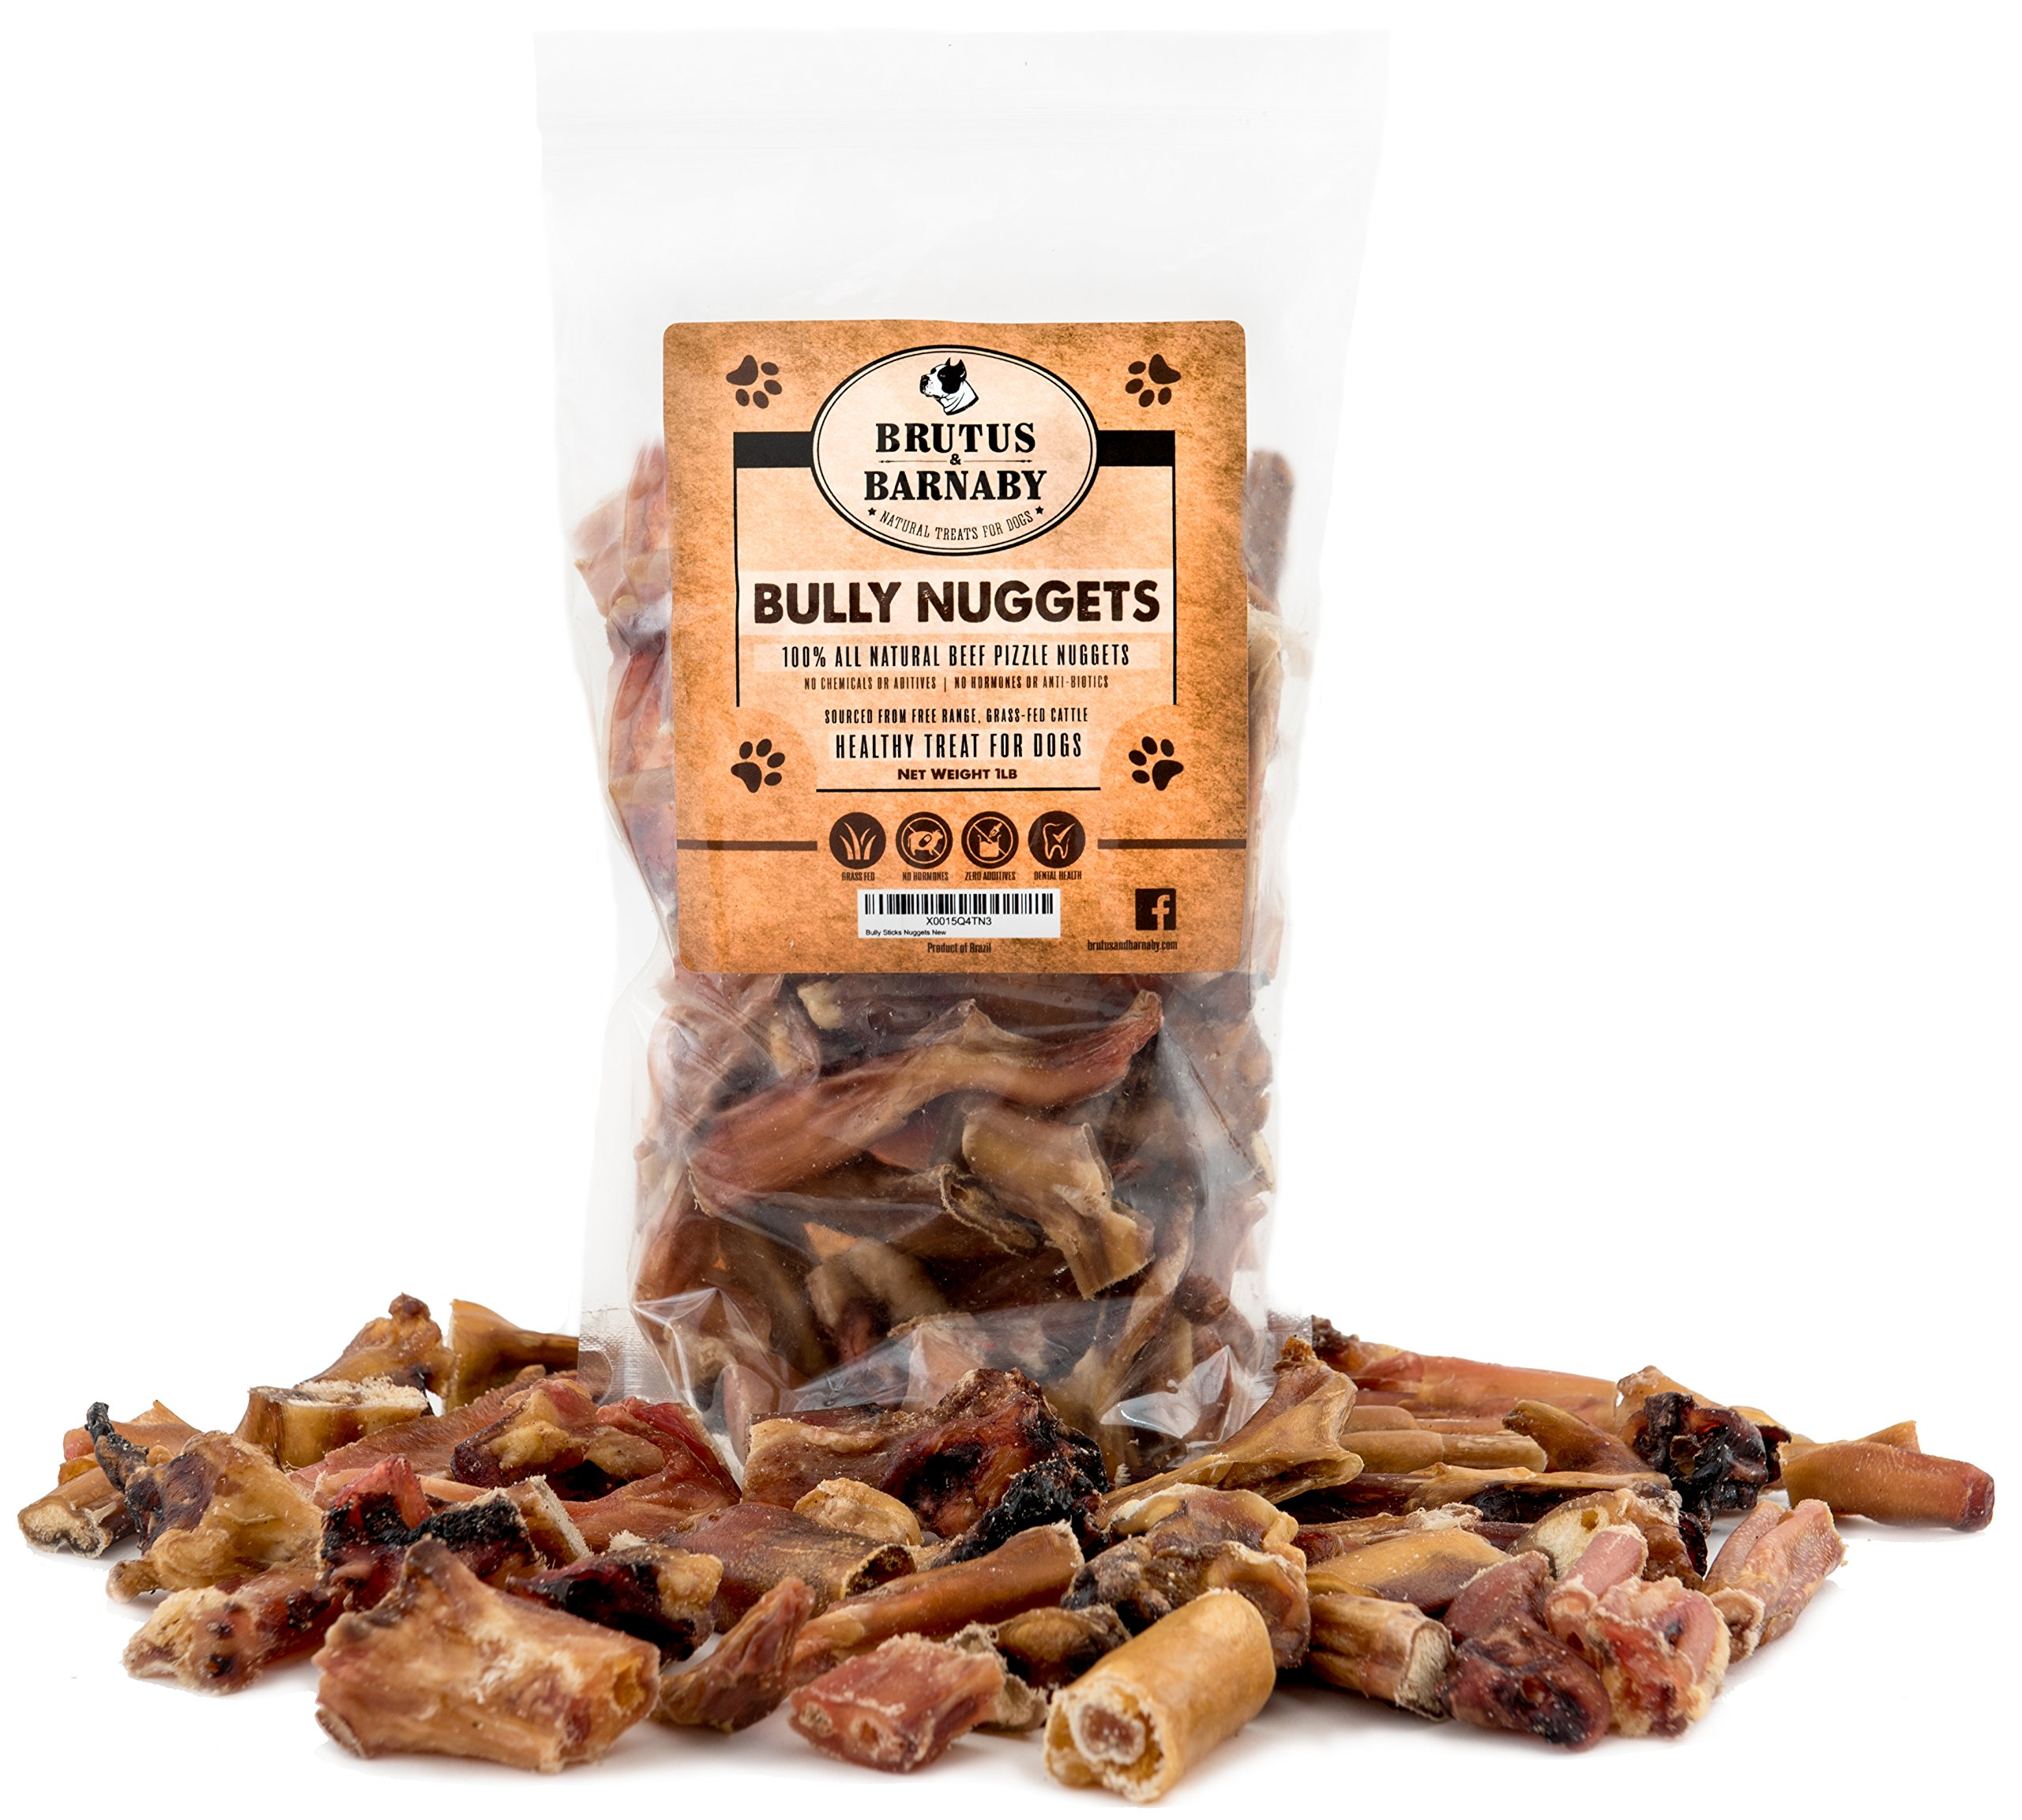 BRUTUS & BARNABY Bully Nuggets- Grass Fed Low Odor Bully Stick Bites- All Natural and Grain Free; USDA Approved (1lb)…